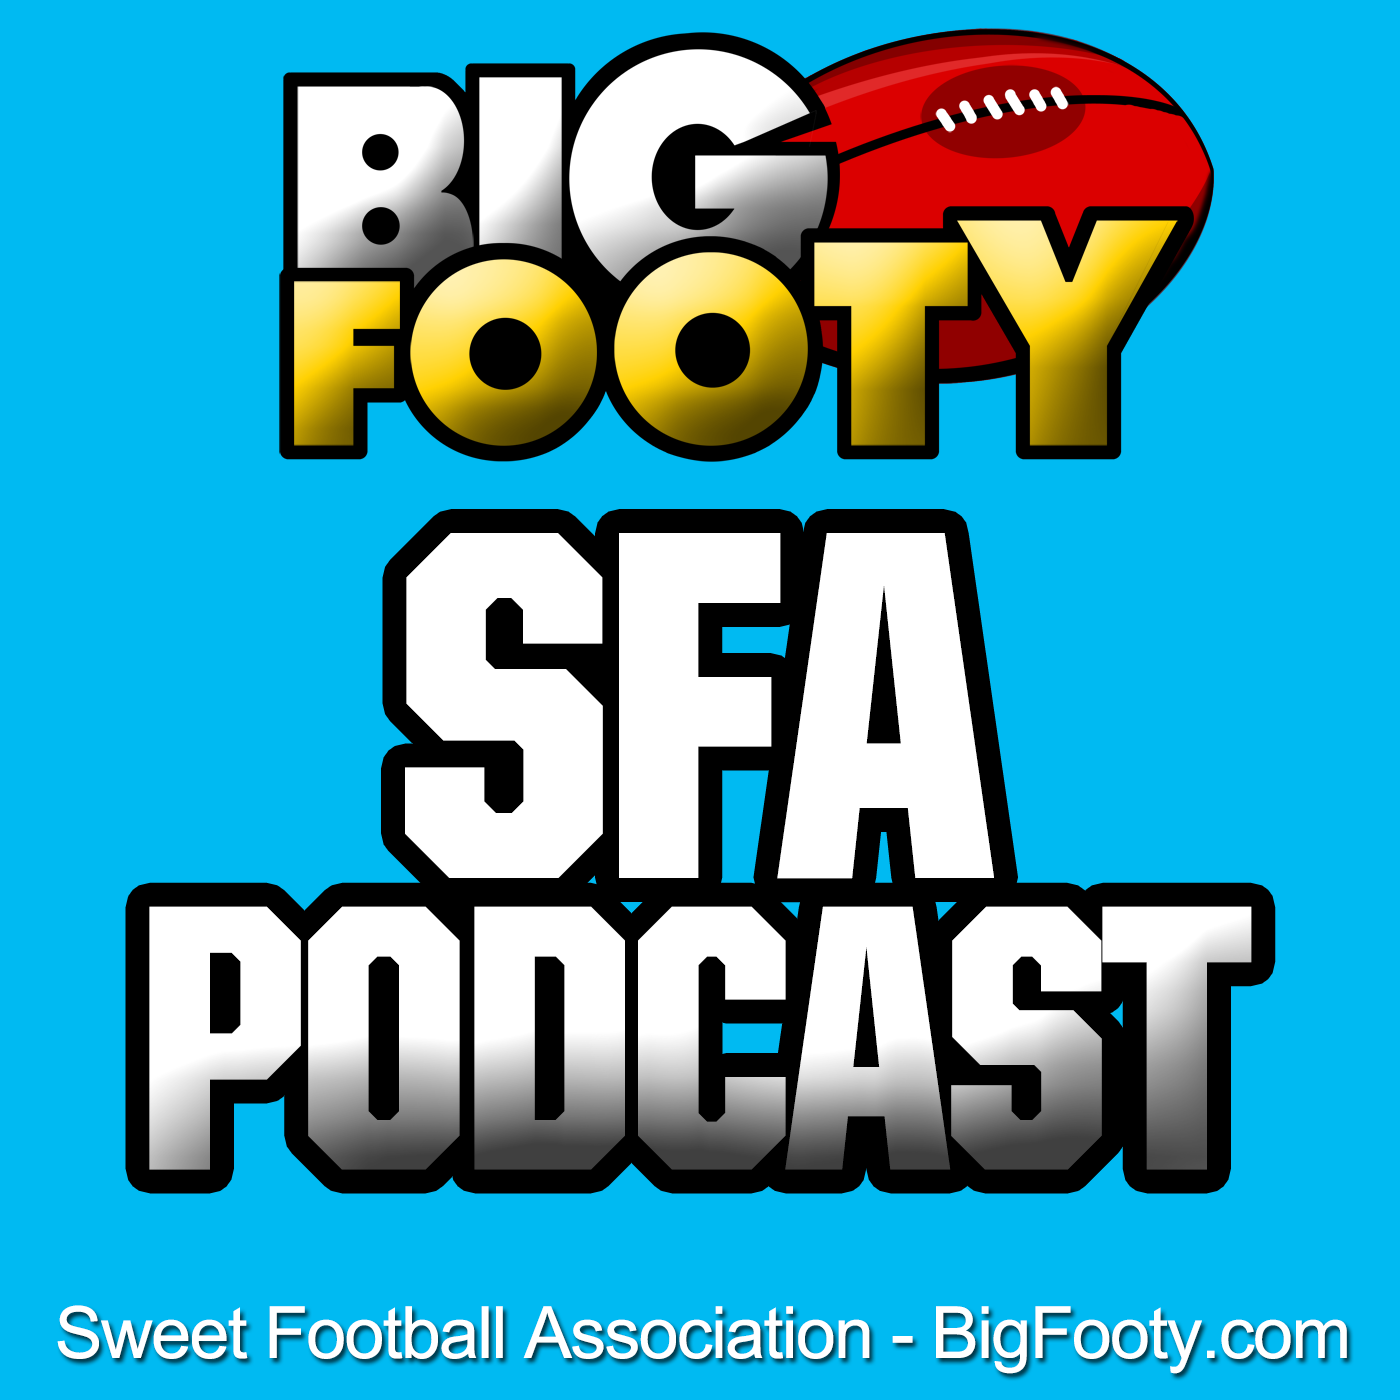 BigFooty Sweet Football Association Podcast